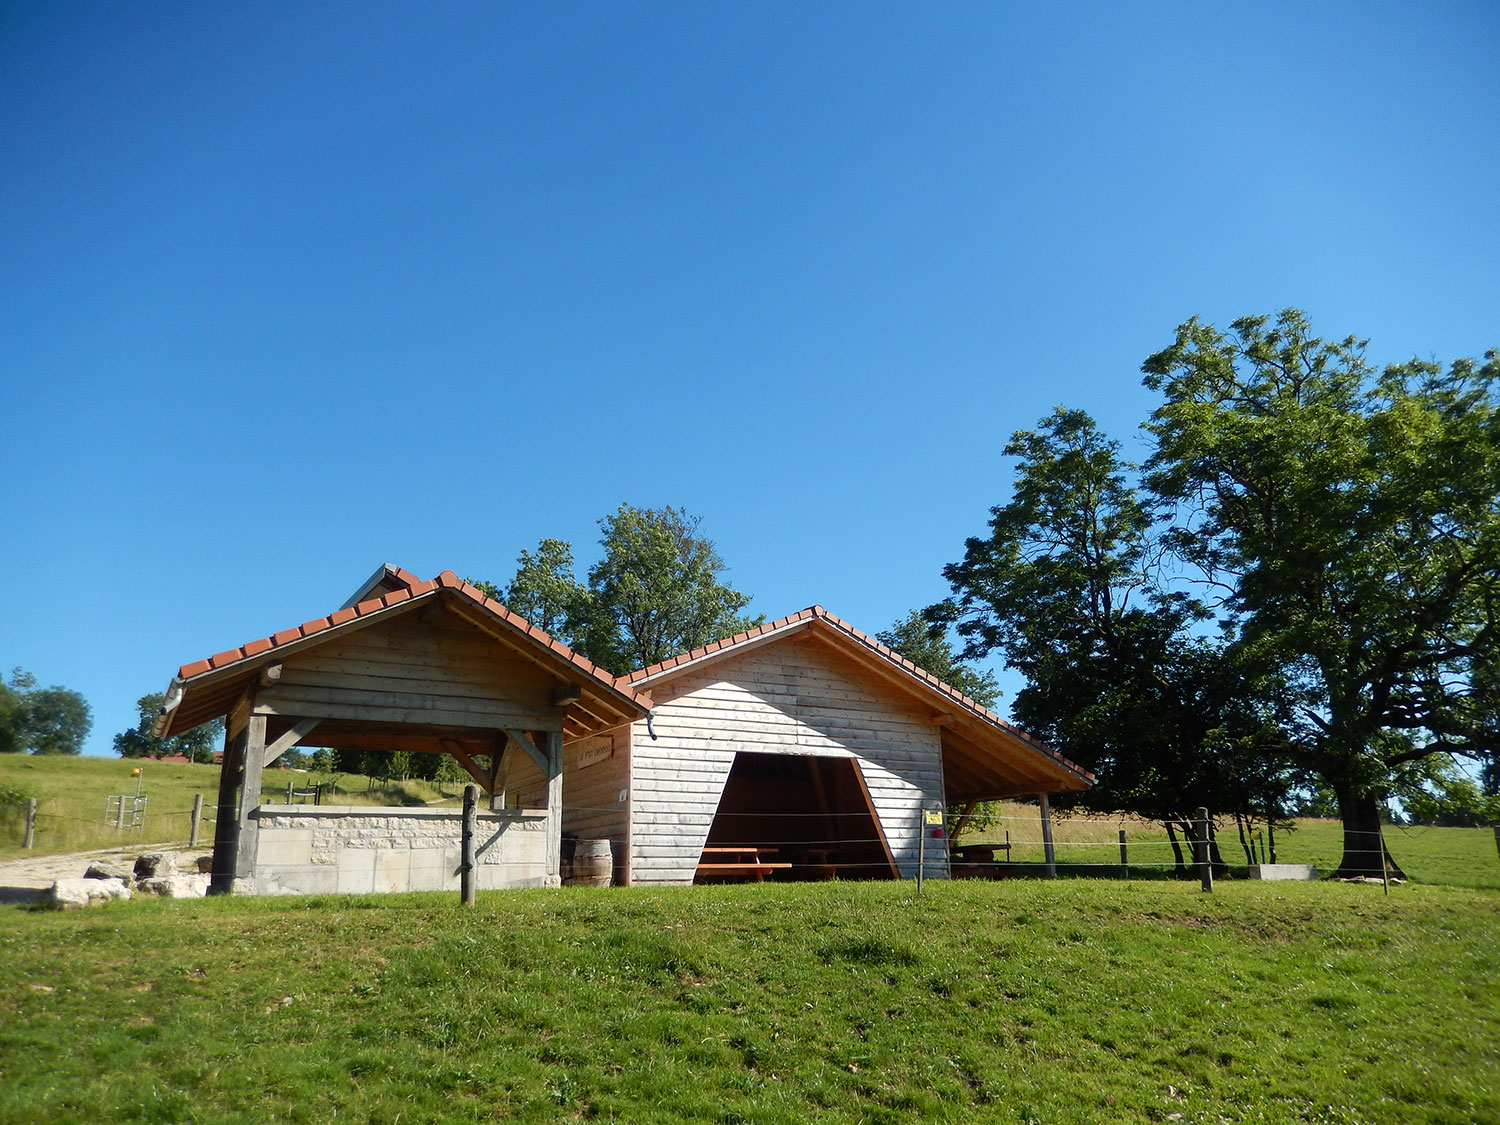 cabane-forestiere-saulcy-jura-suisse-1